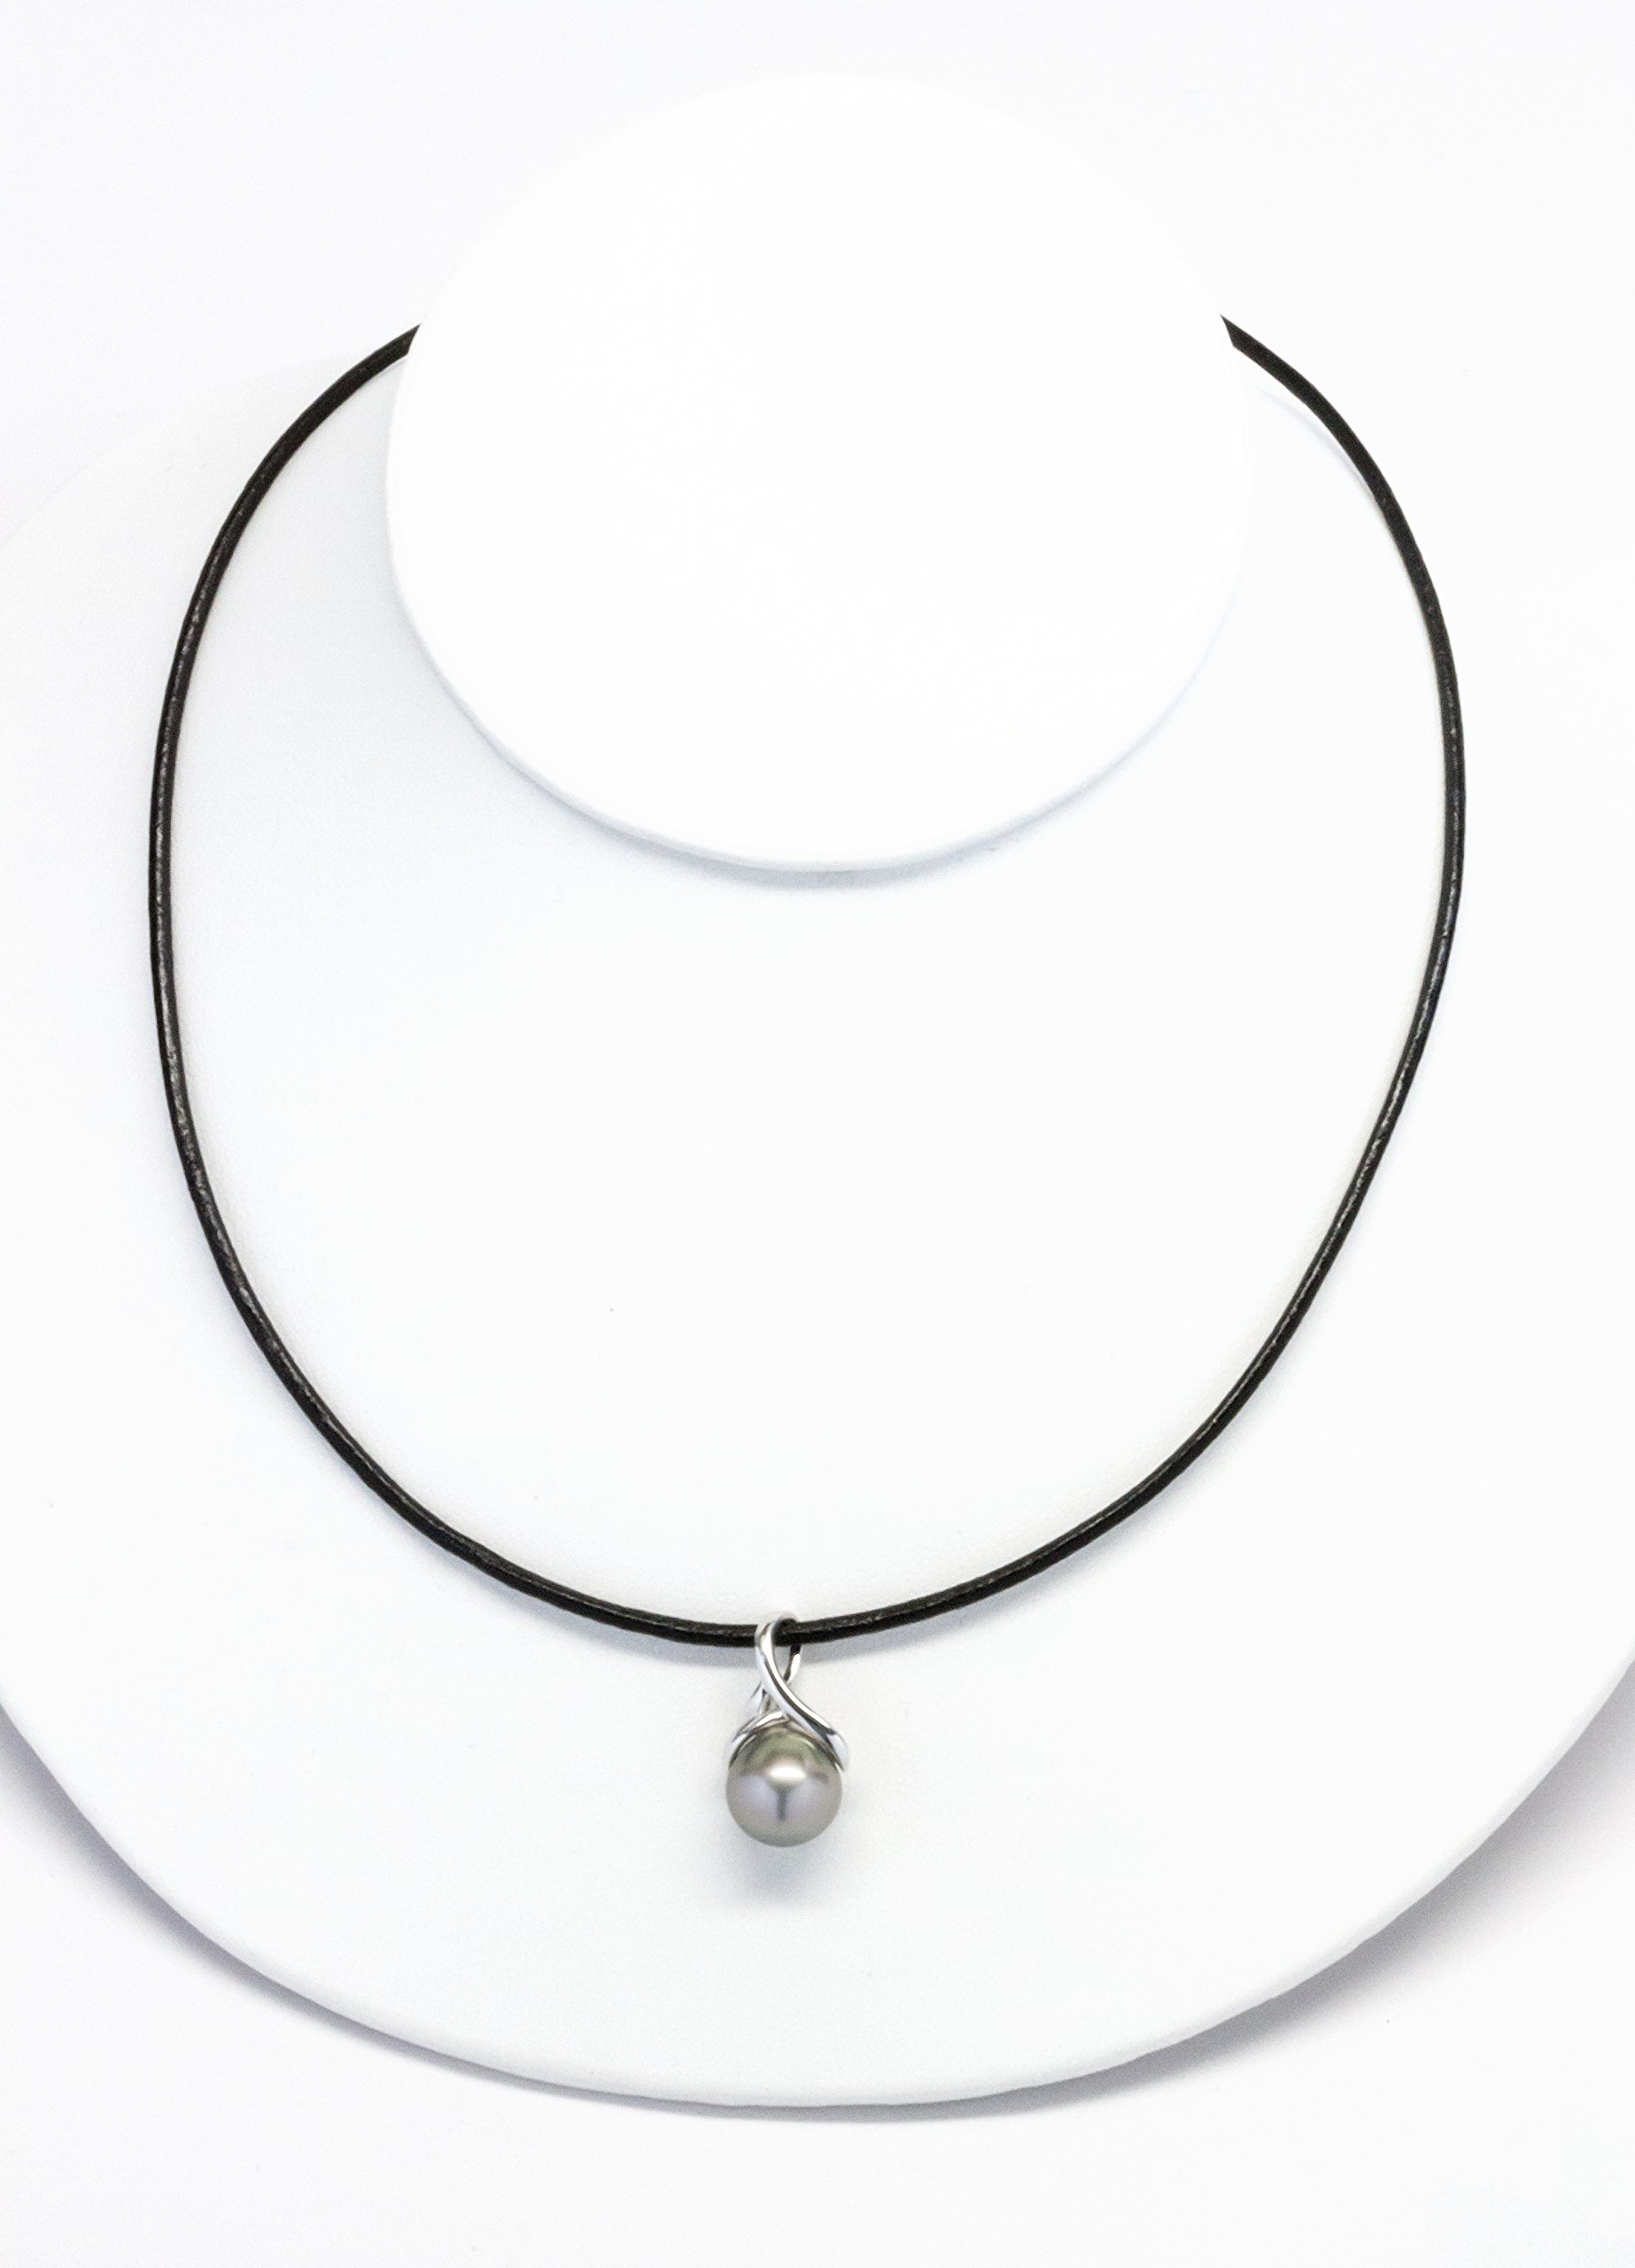 ISAAC WESTMAN Tahitian Baroque Cultured Pearl Pendant,10–12.5mm, High Luster, 2mm Black Leather Cord